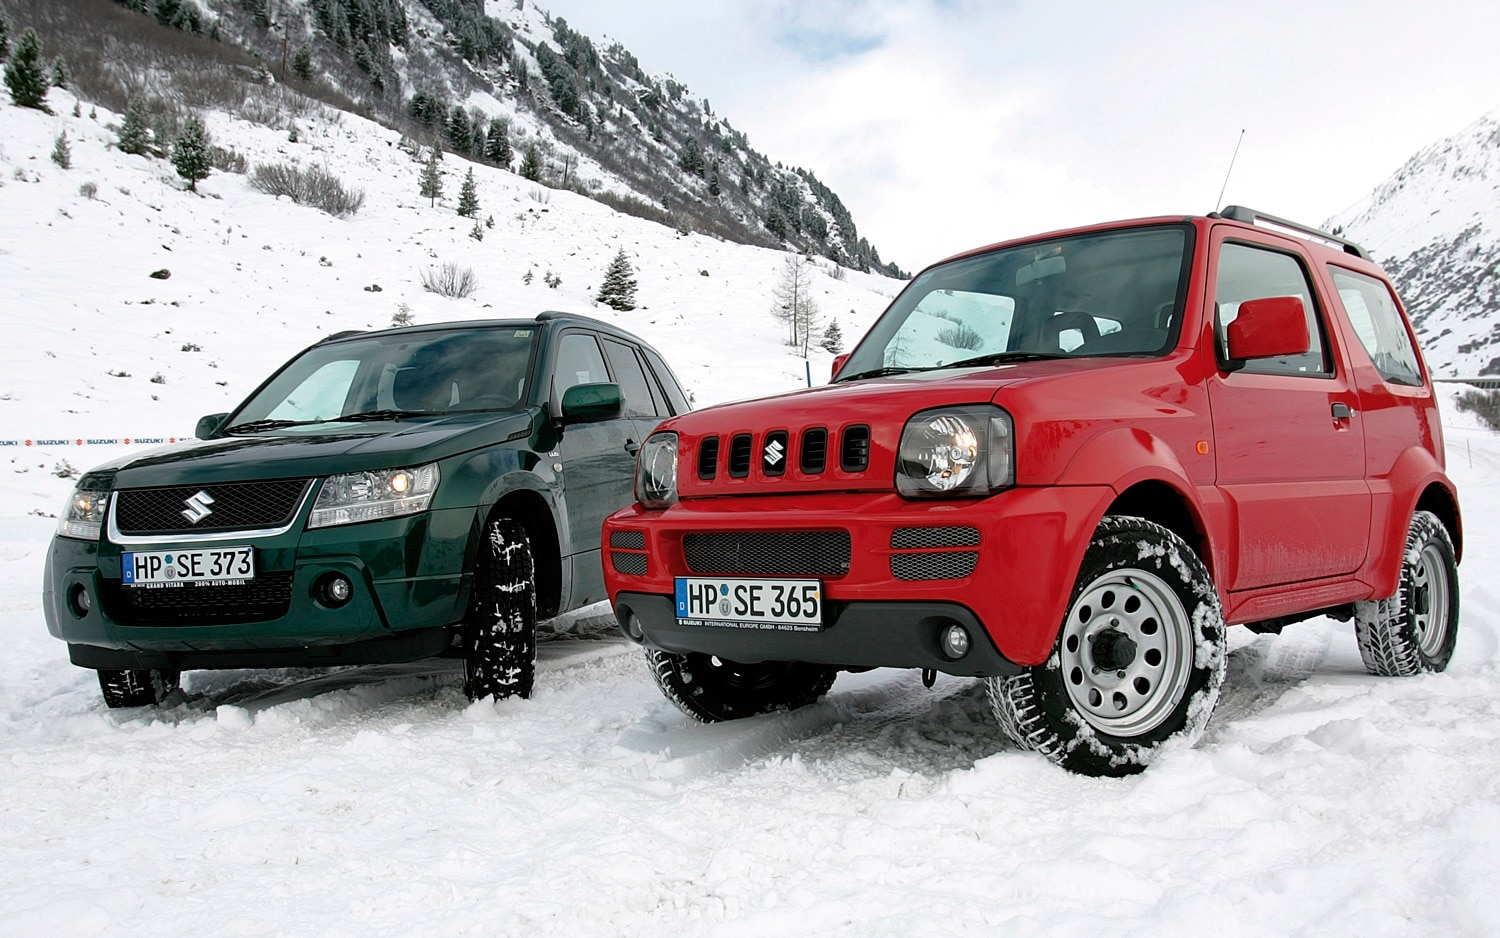 Suzuki Jimny And Grand Vitara In Snow11